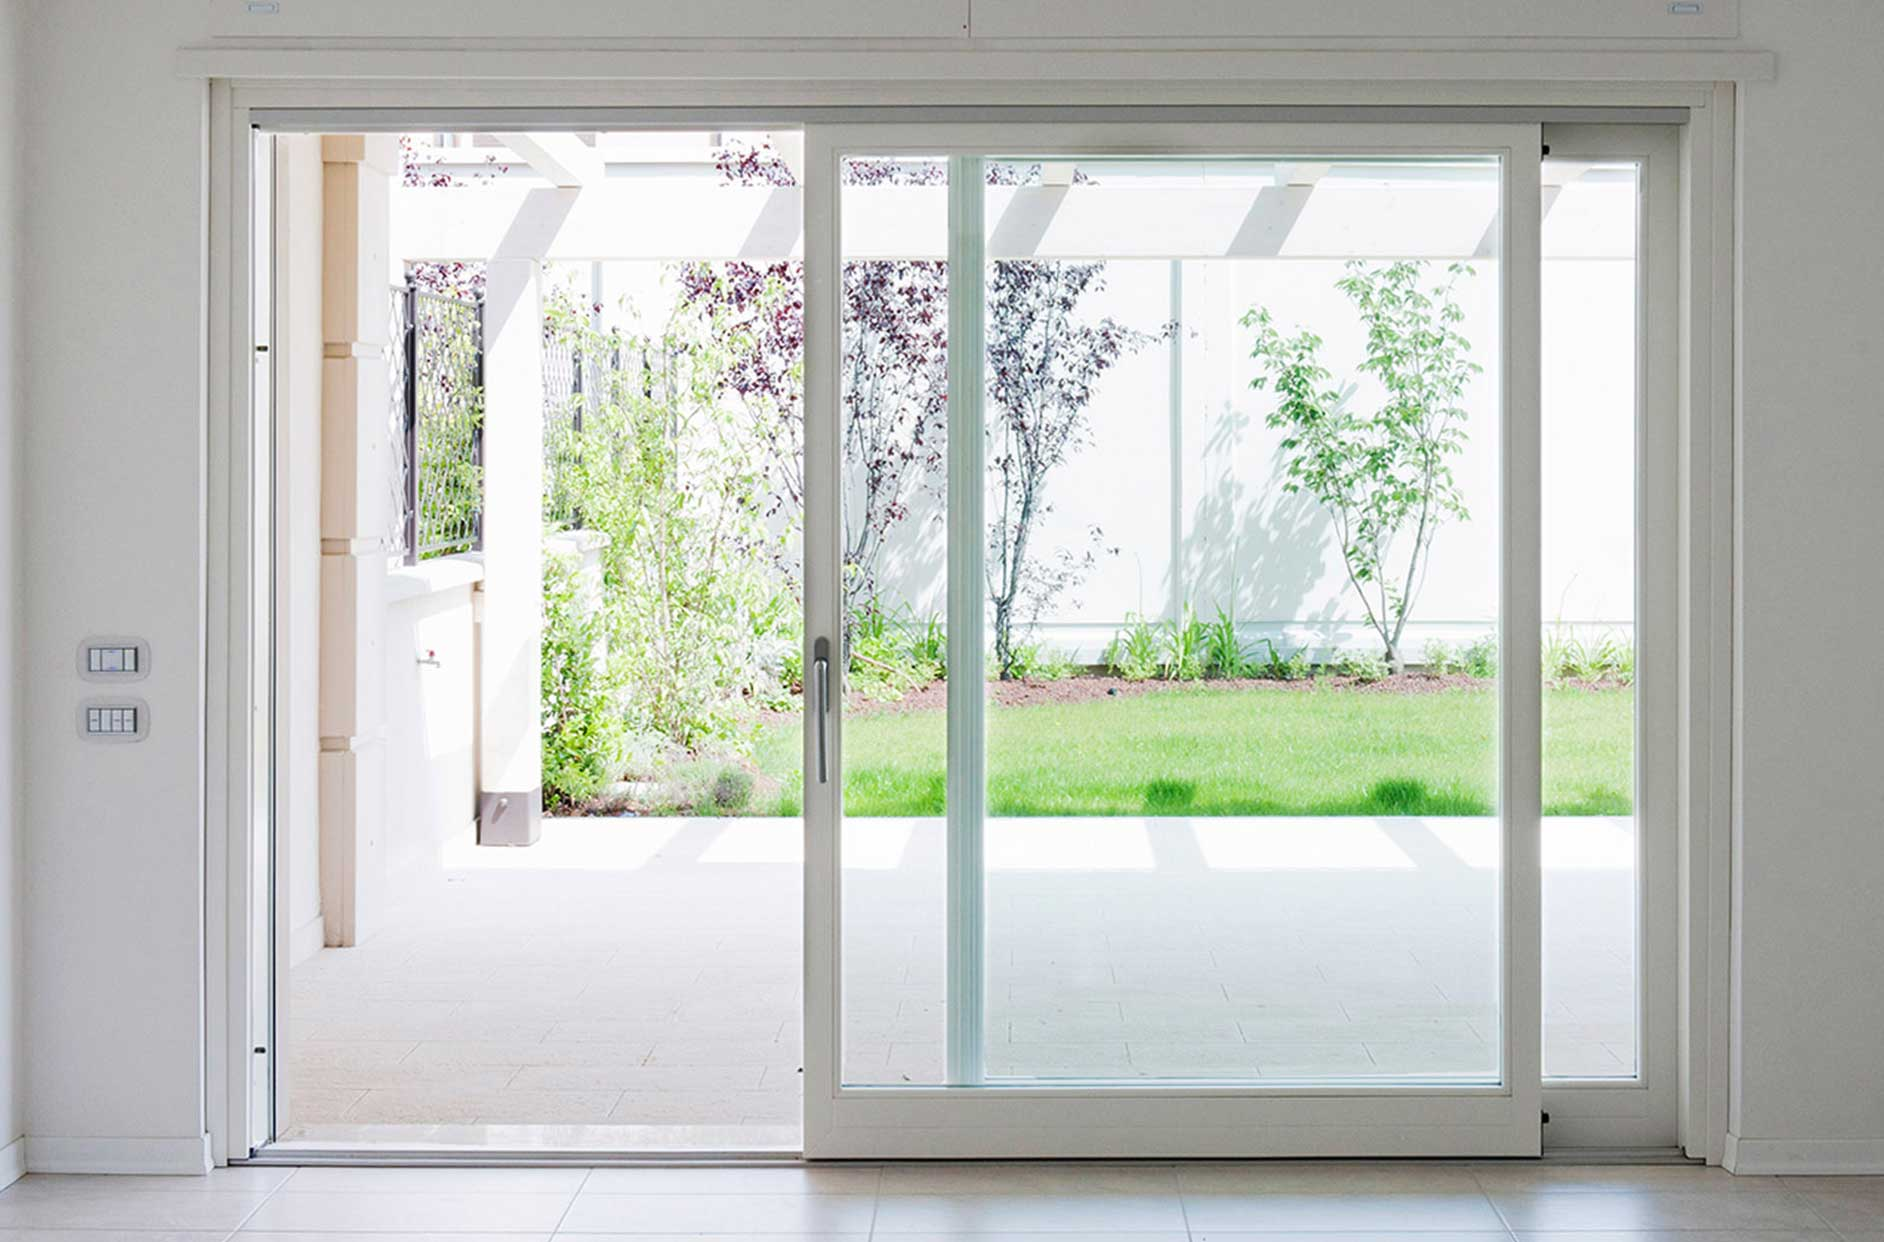 How To Stop Upvc Windows From Expanding